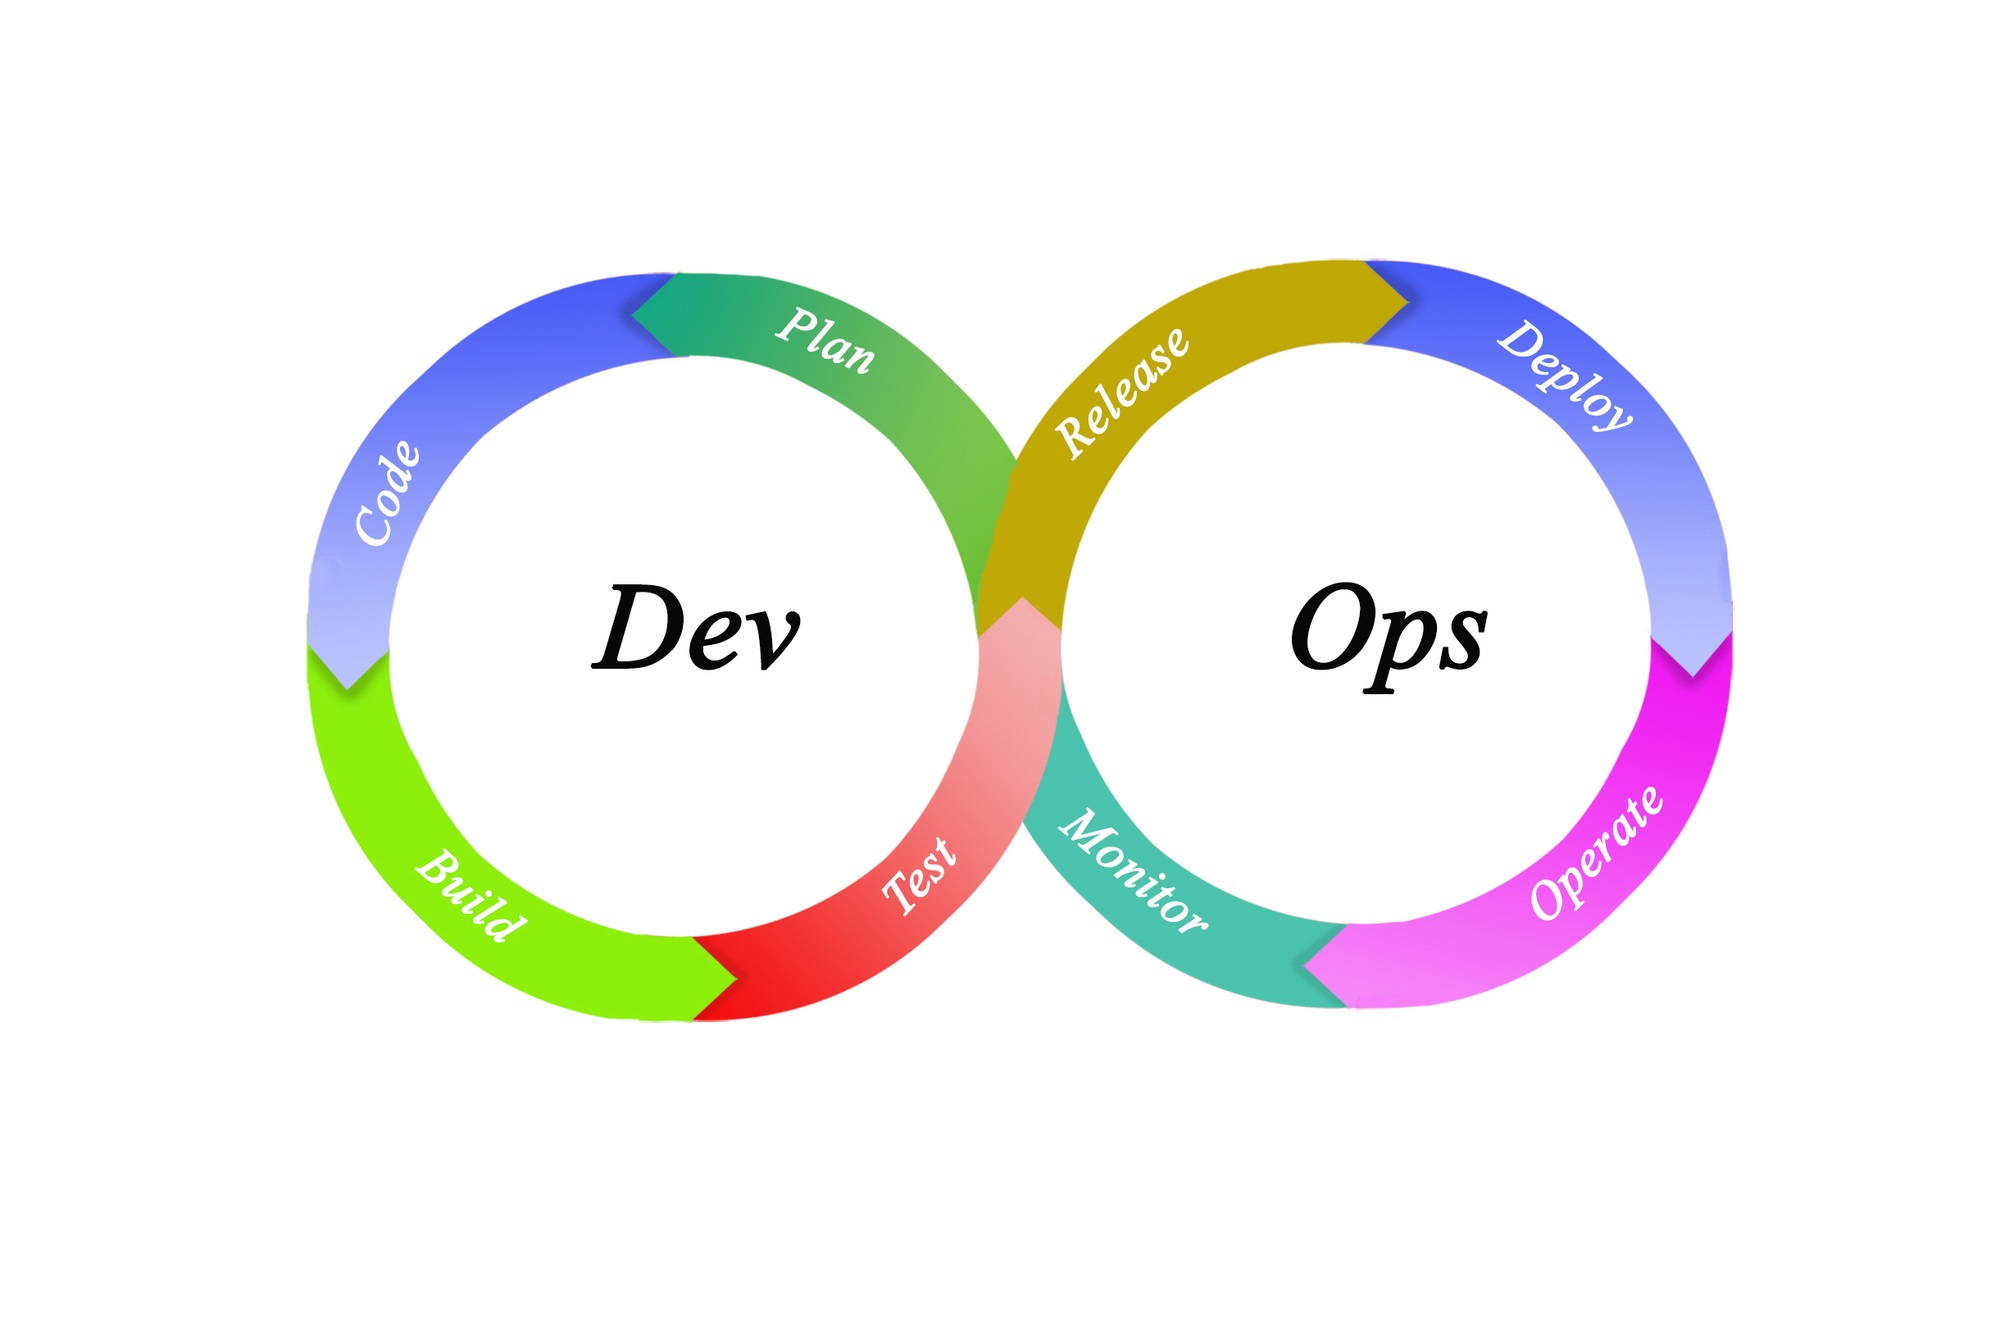 hight resolution of 7 devops tools needed for hyper growth